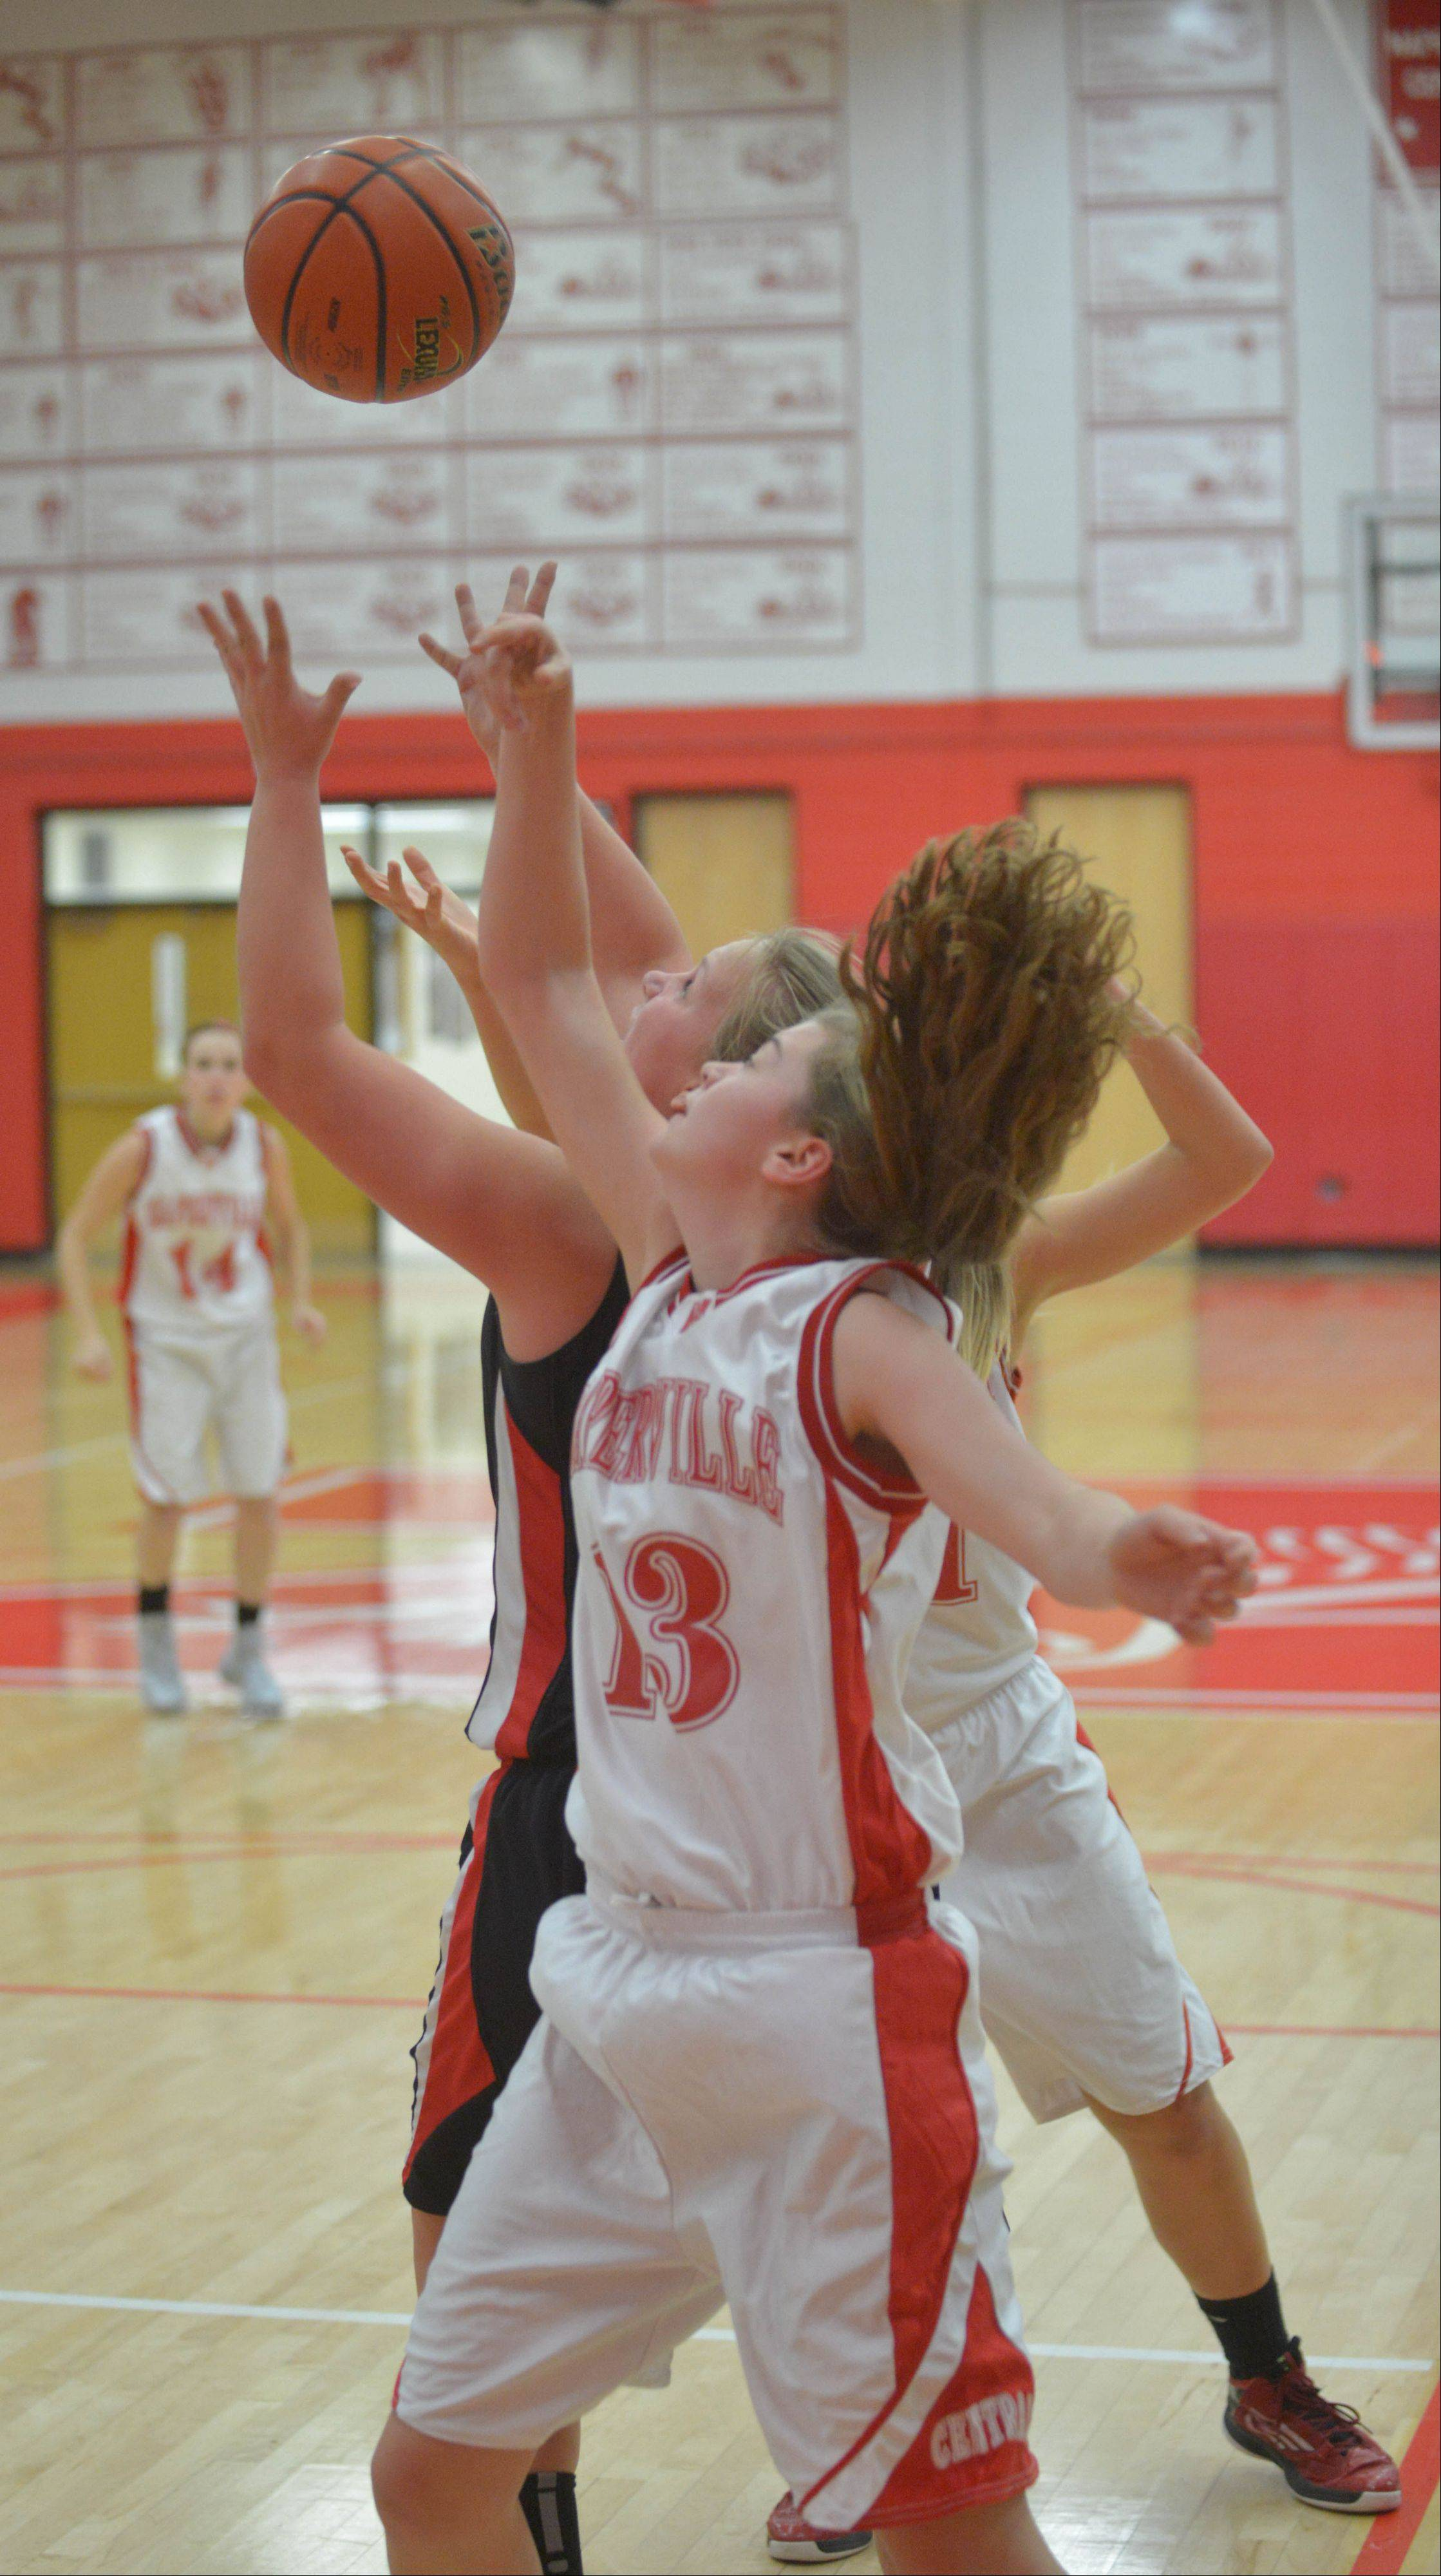 Katie Moran of Naperville Central goes up for a rebound during the Glenbard East at Naperville Central girls basketball game Thursday.